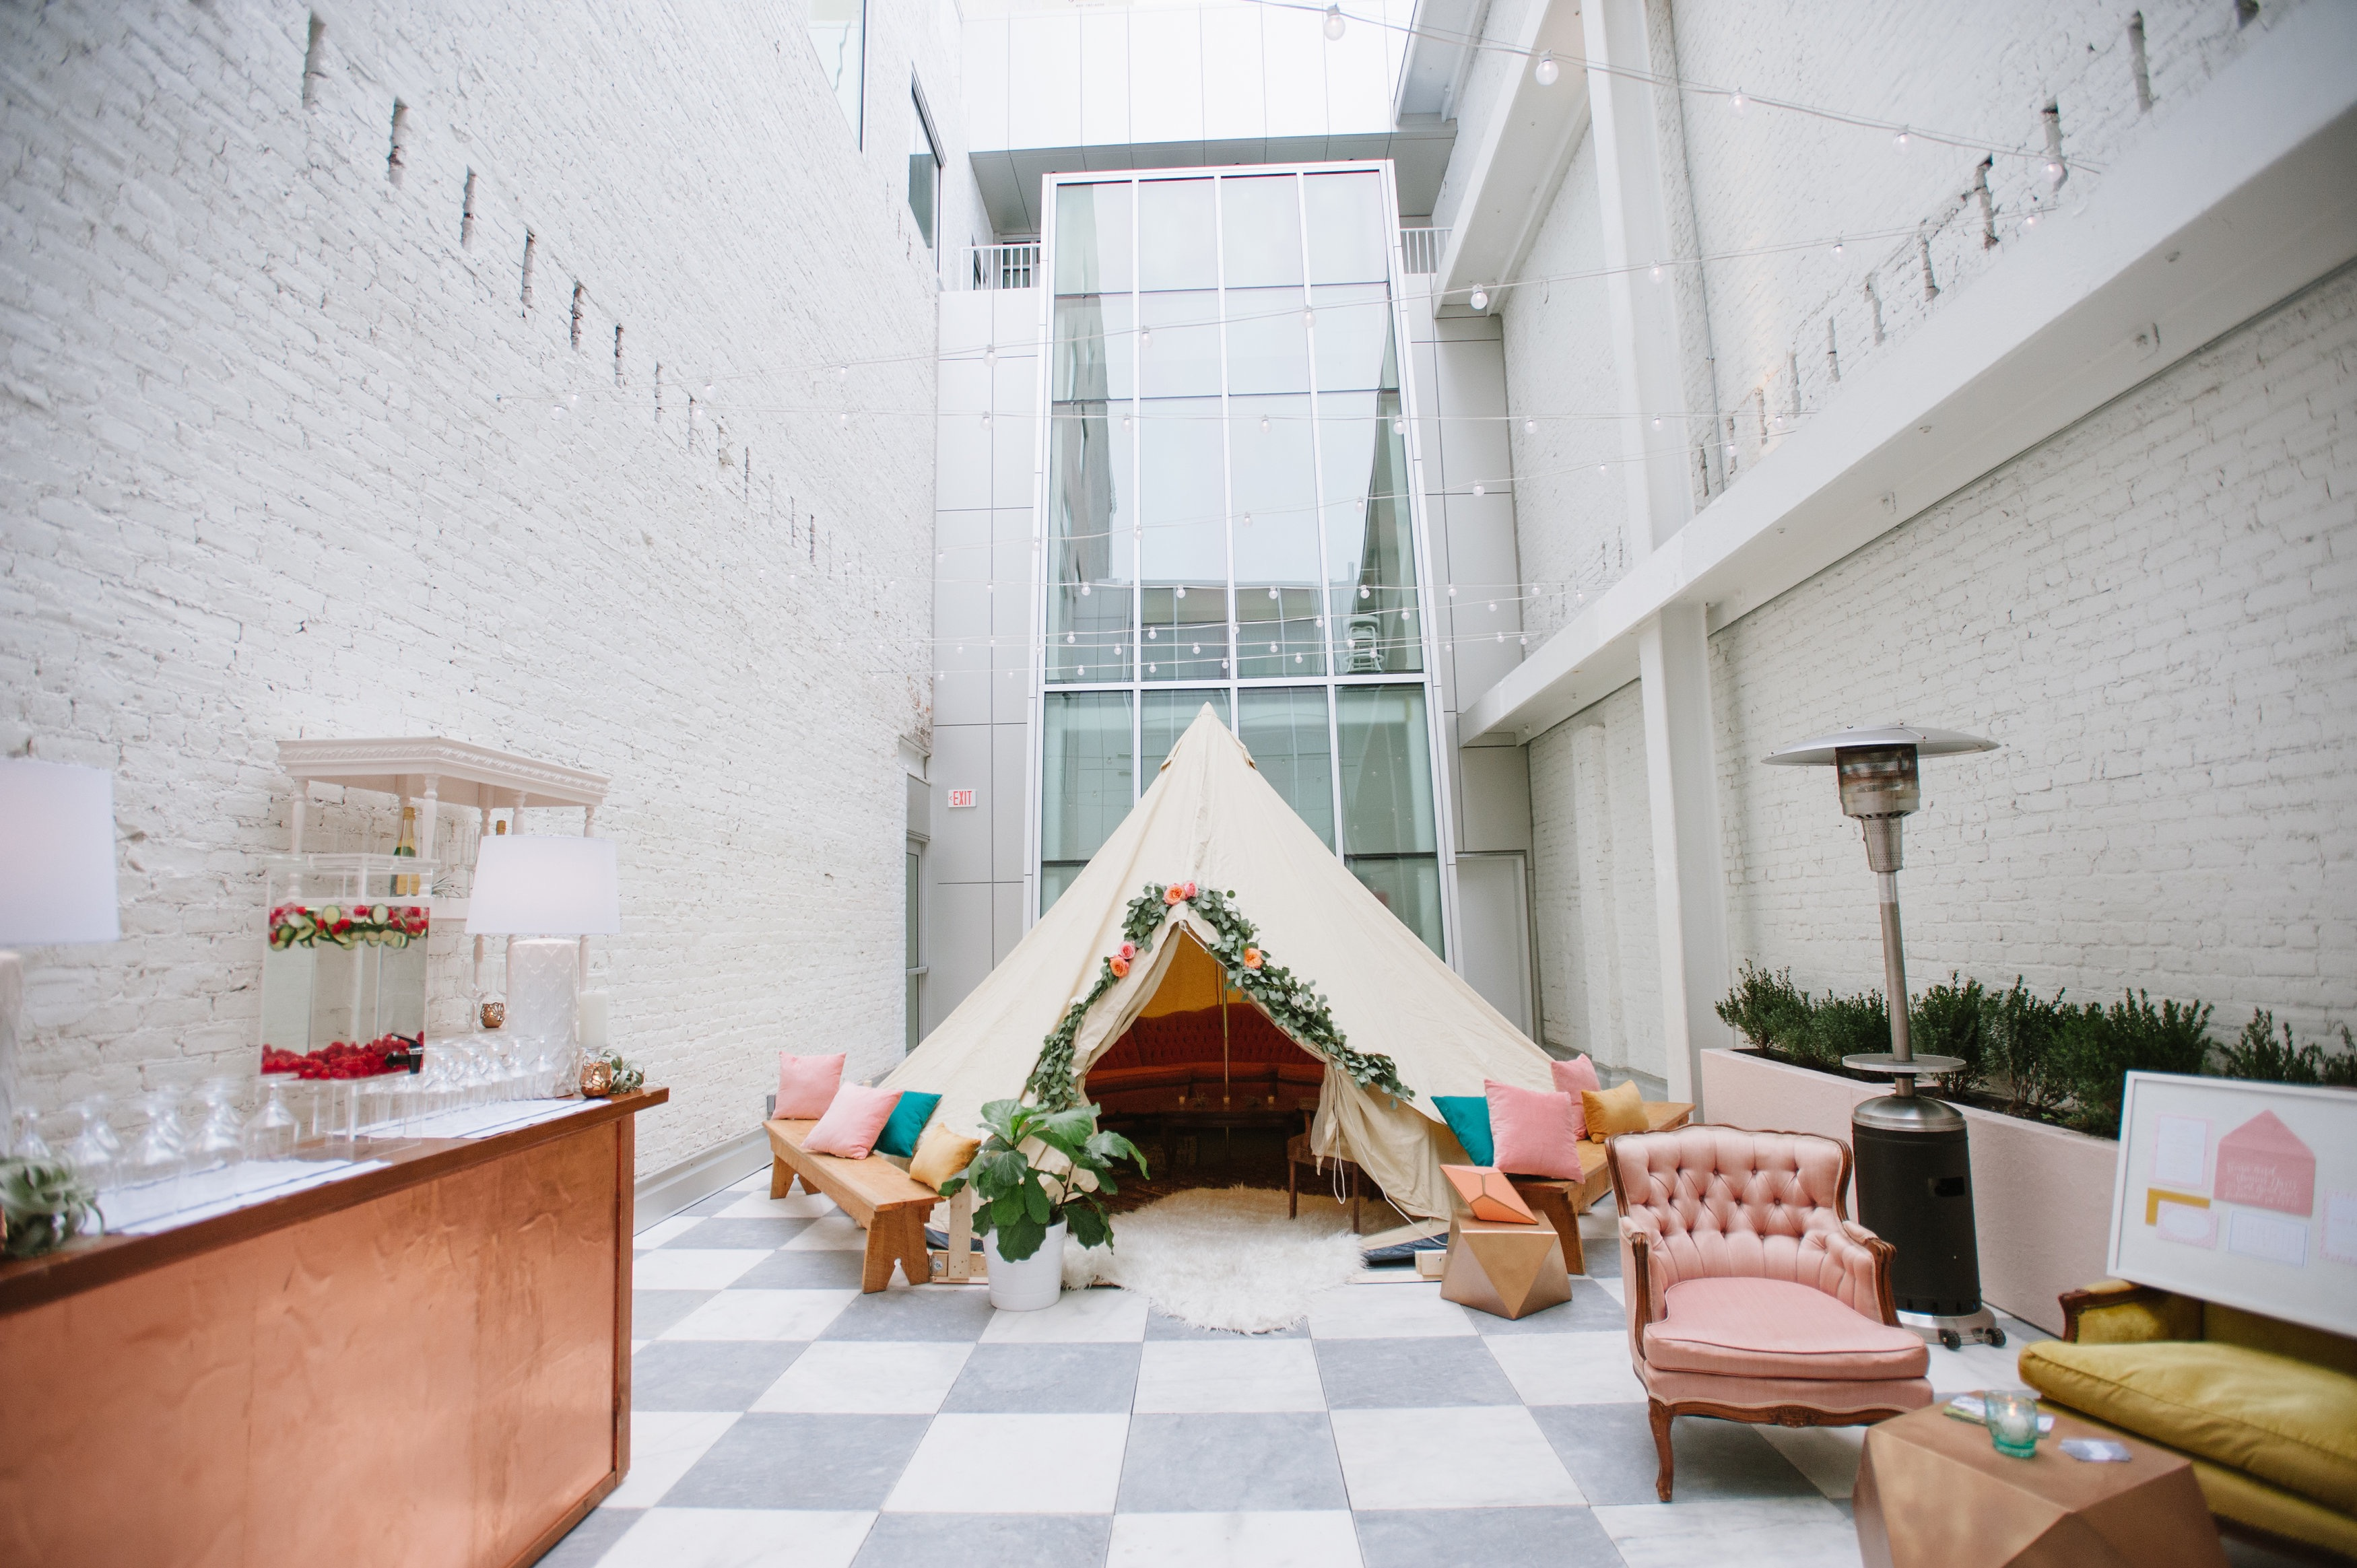 Fun wedding reception inspiration at Quirk Hotel in Richmond, Virginia. Speciality rentals from Paisley and Jade include the canvas tent, vintage lounge, white pine benches, assorted pillows, homestead copper bar and white carved post hutches.